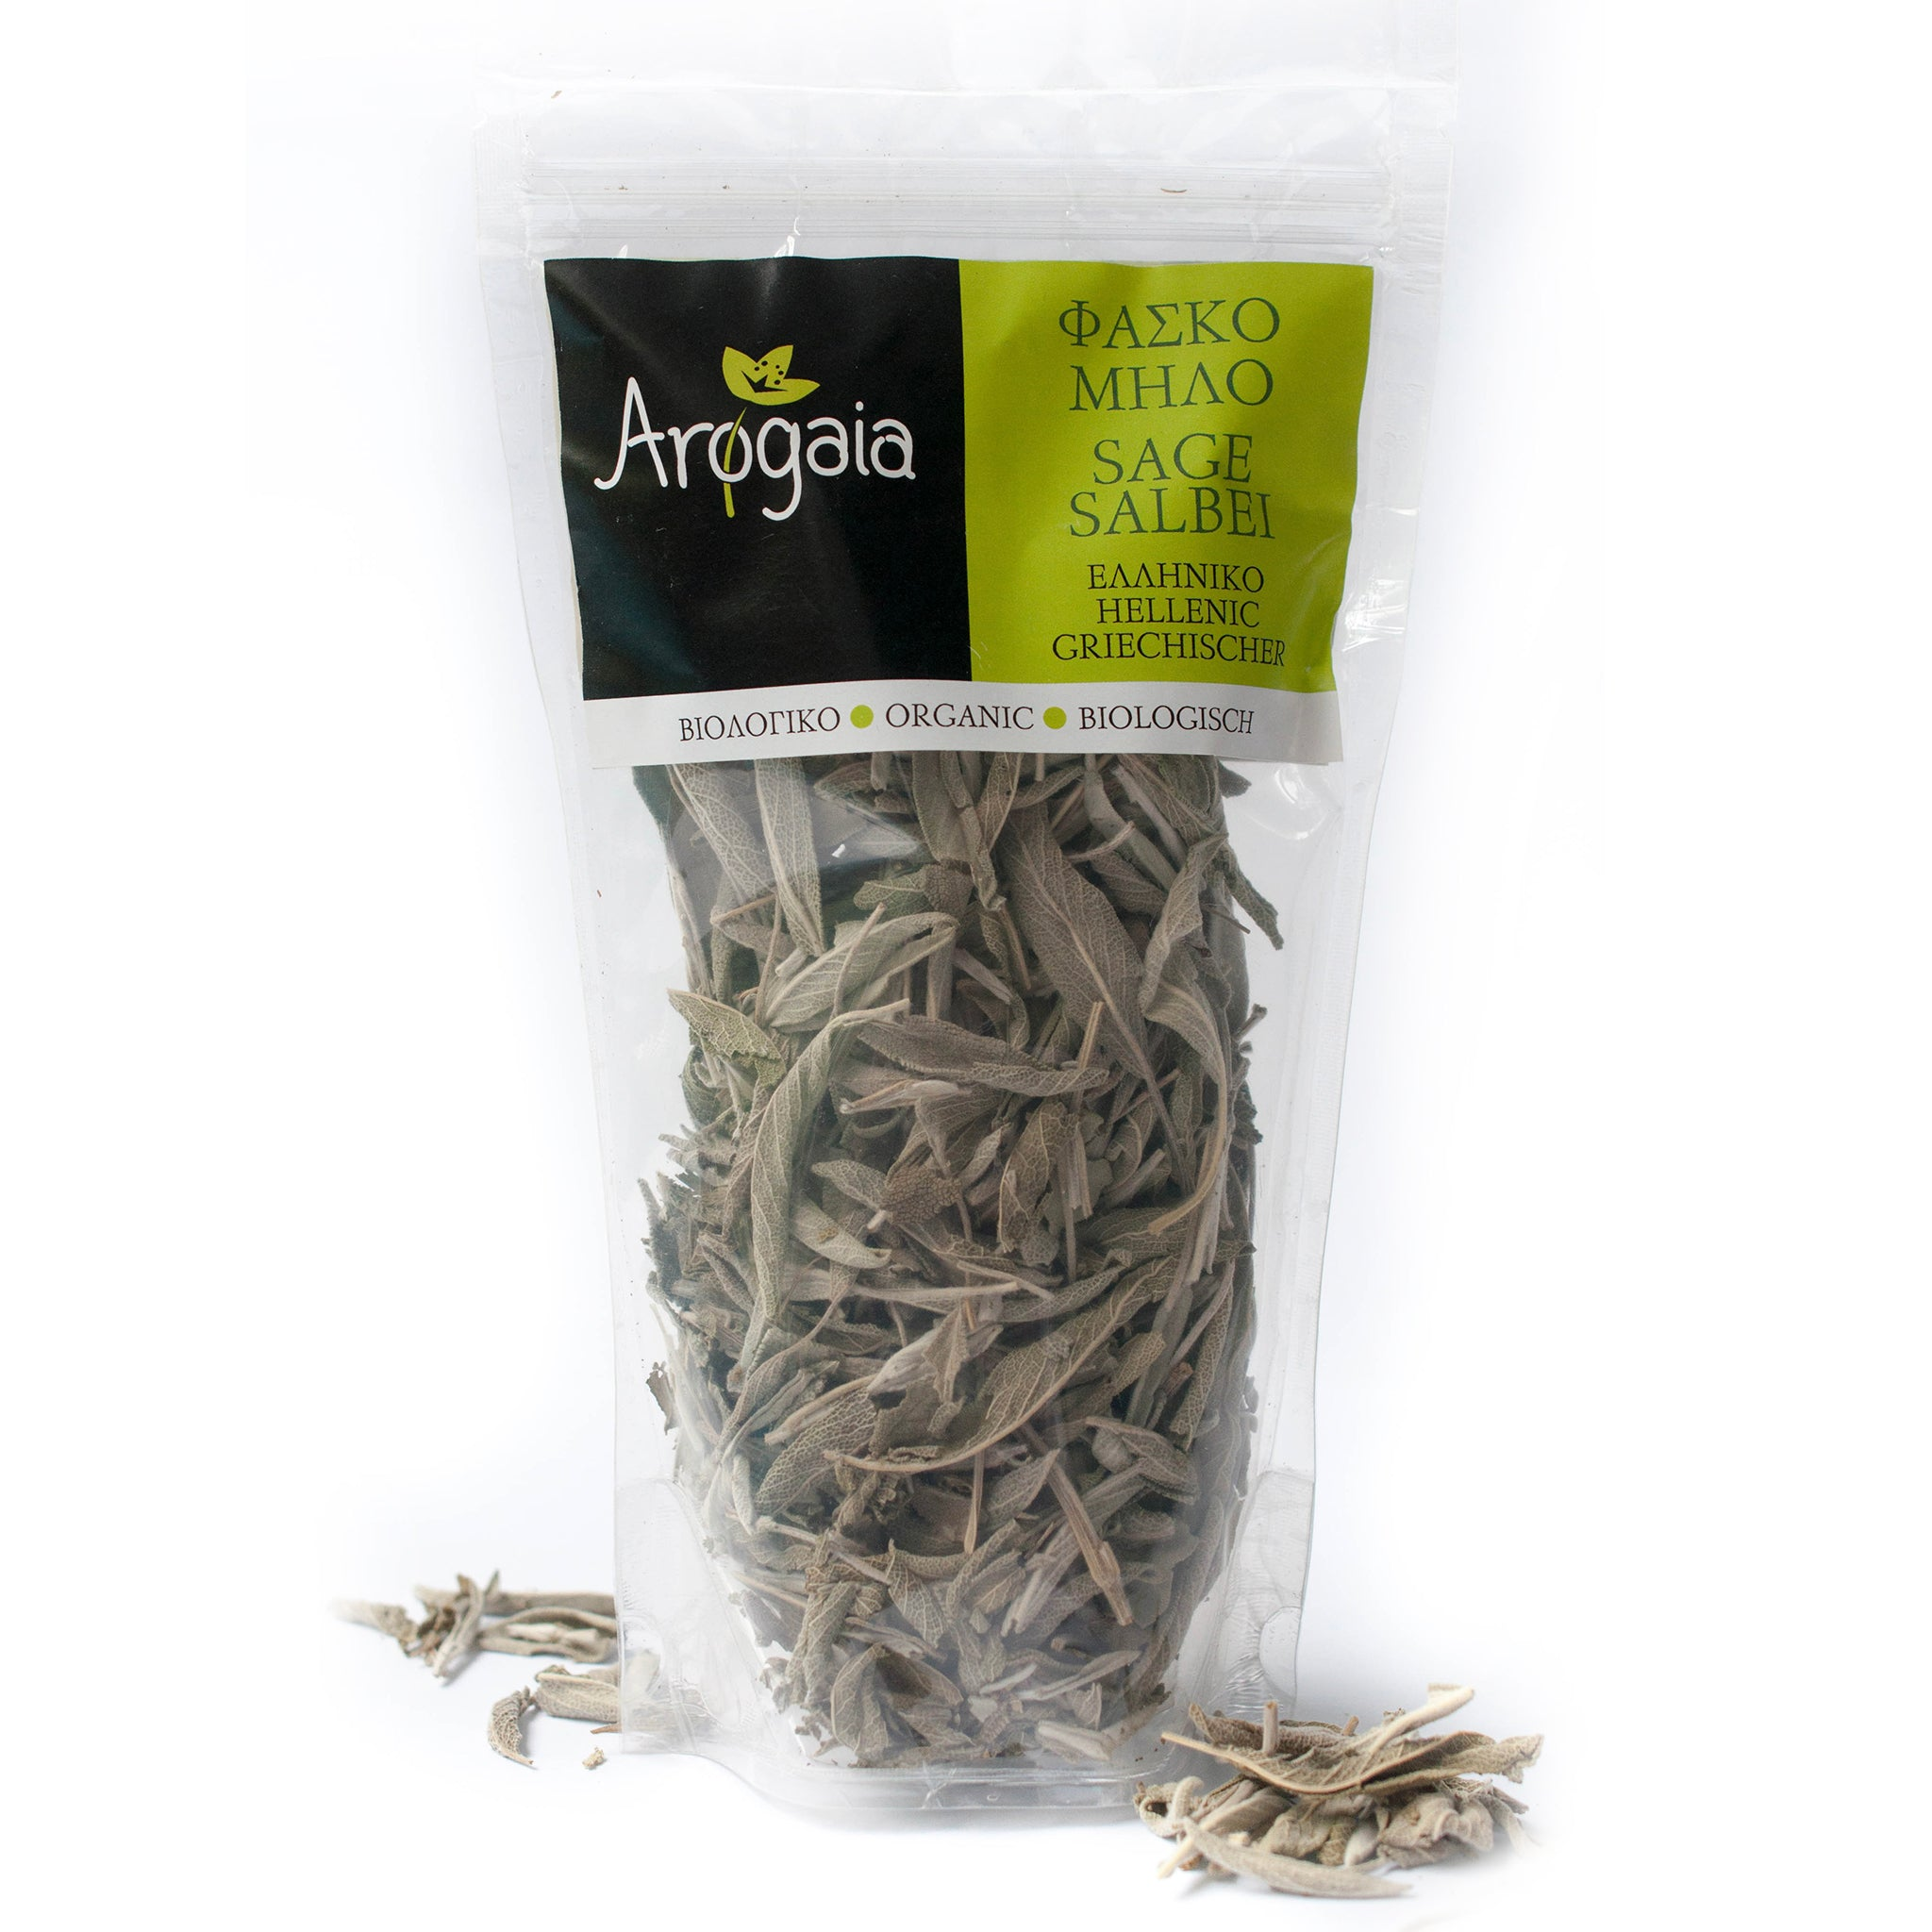 Arogaia Organic Greek Sage in a resealable bag, 40gr